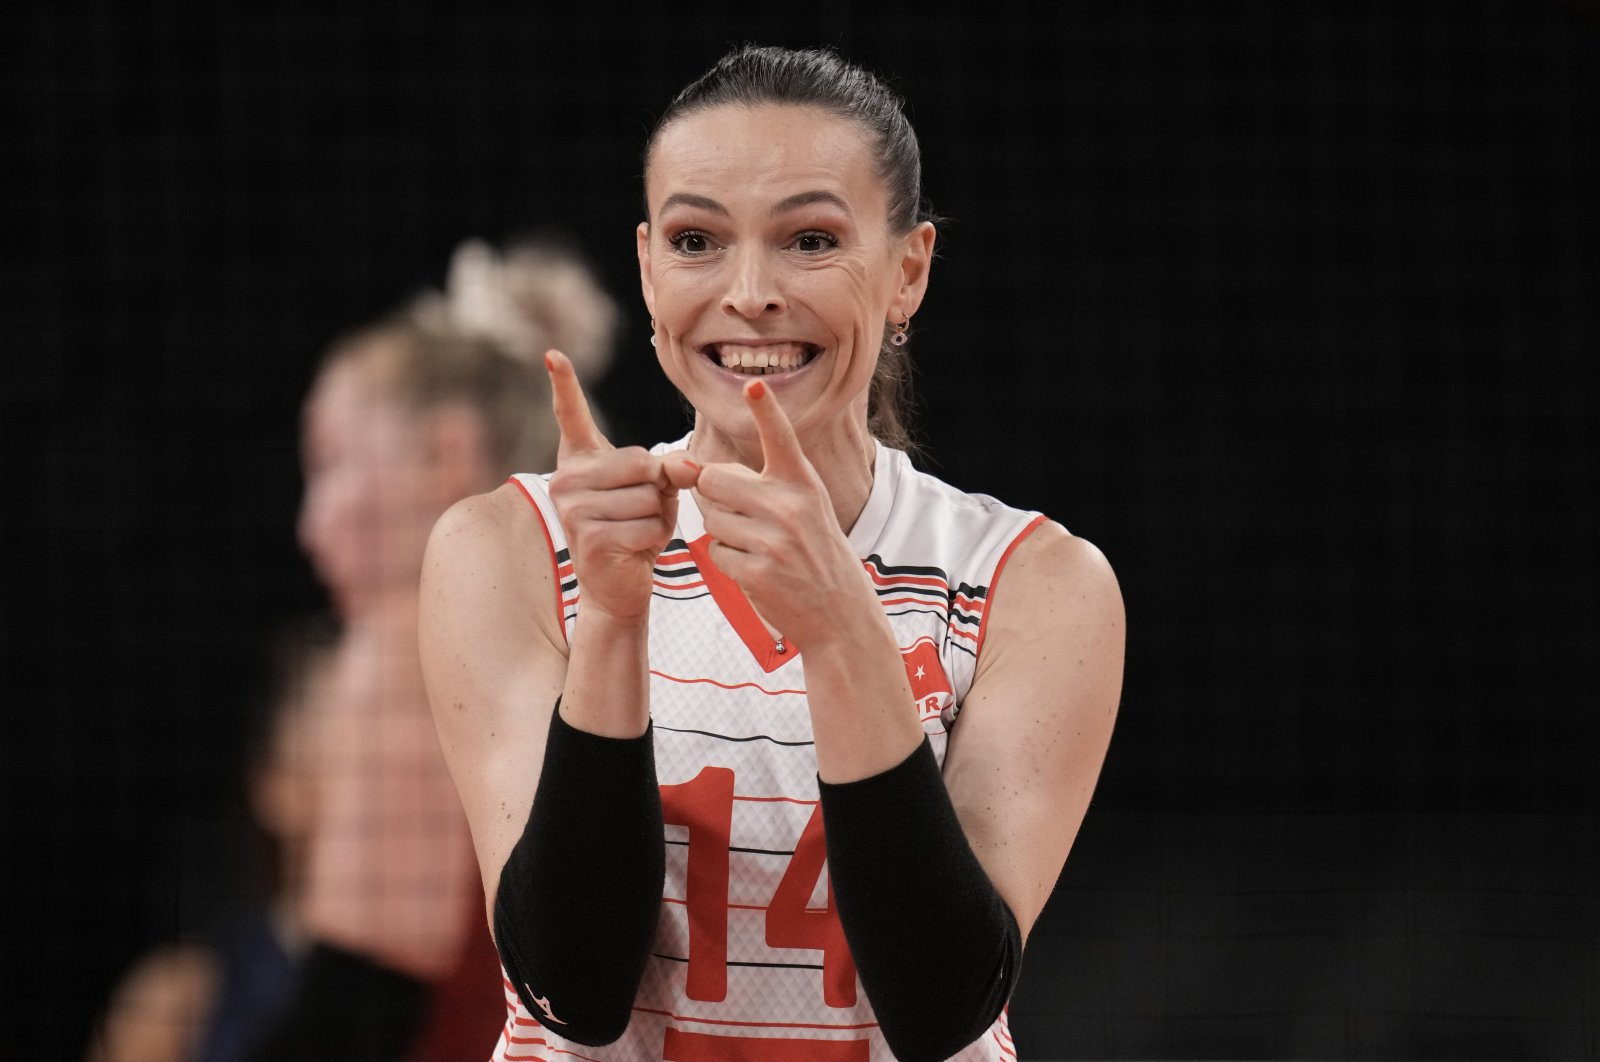 Turkey's Eda Erdem Dündar celebrates a point during a women's volleyball preliminary round match against the United States, at the 2020 Summer Olympics, Tokyo, Japan, July 29, 2021. (AP Photo)